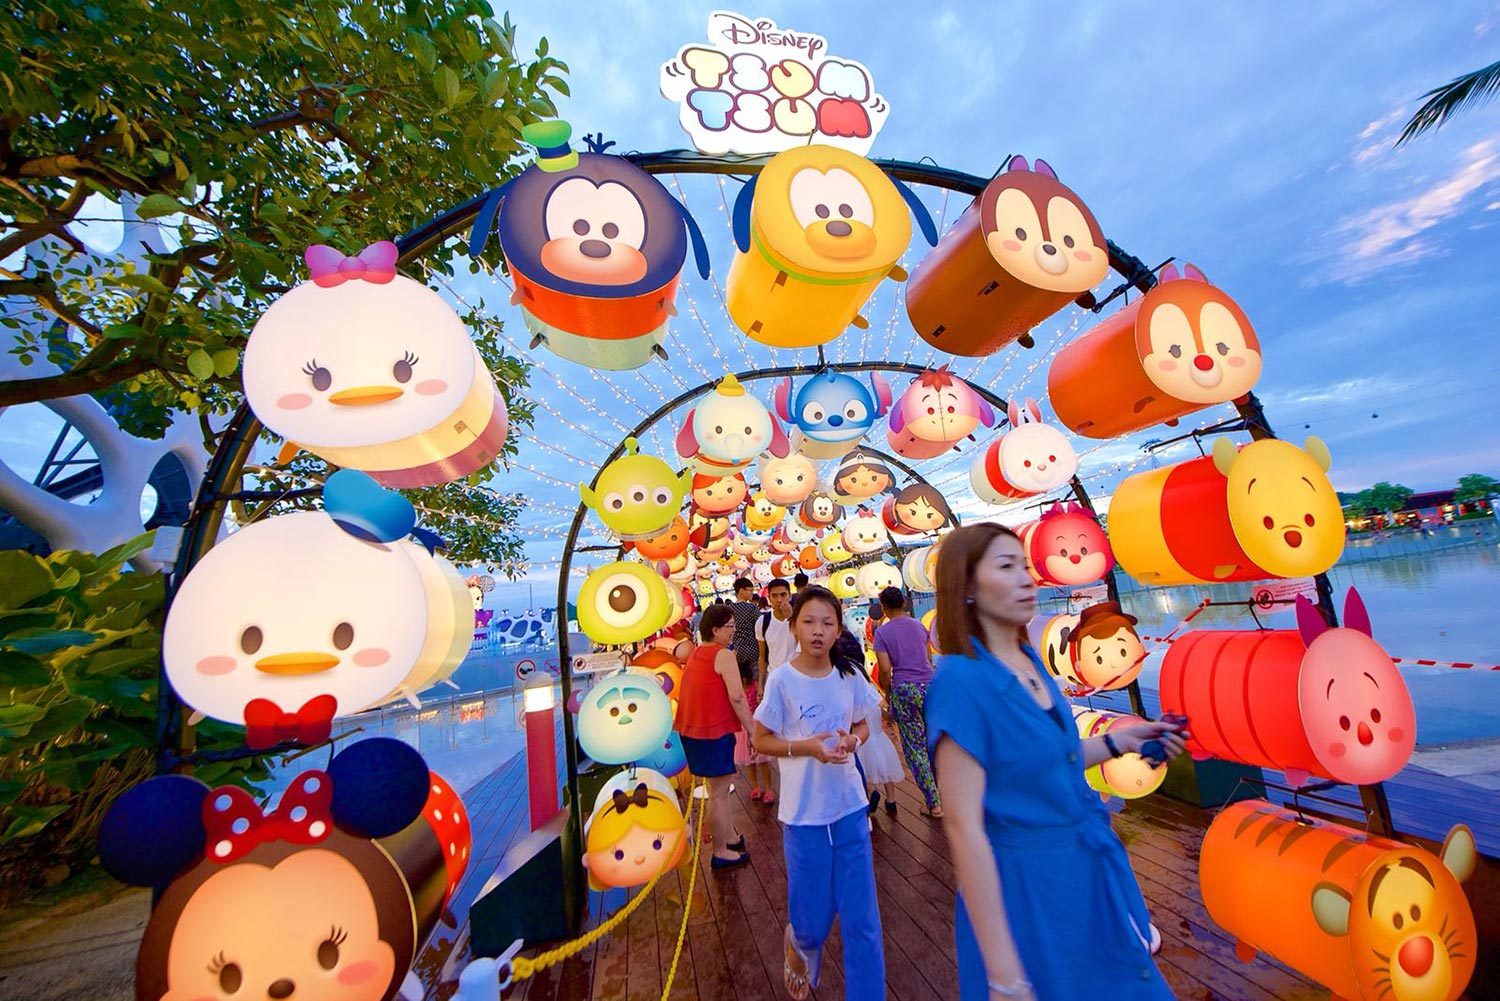 VivoCity presents Disney Tsum Tsum Mid-Autumn Celebration of Love